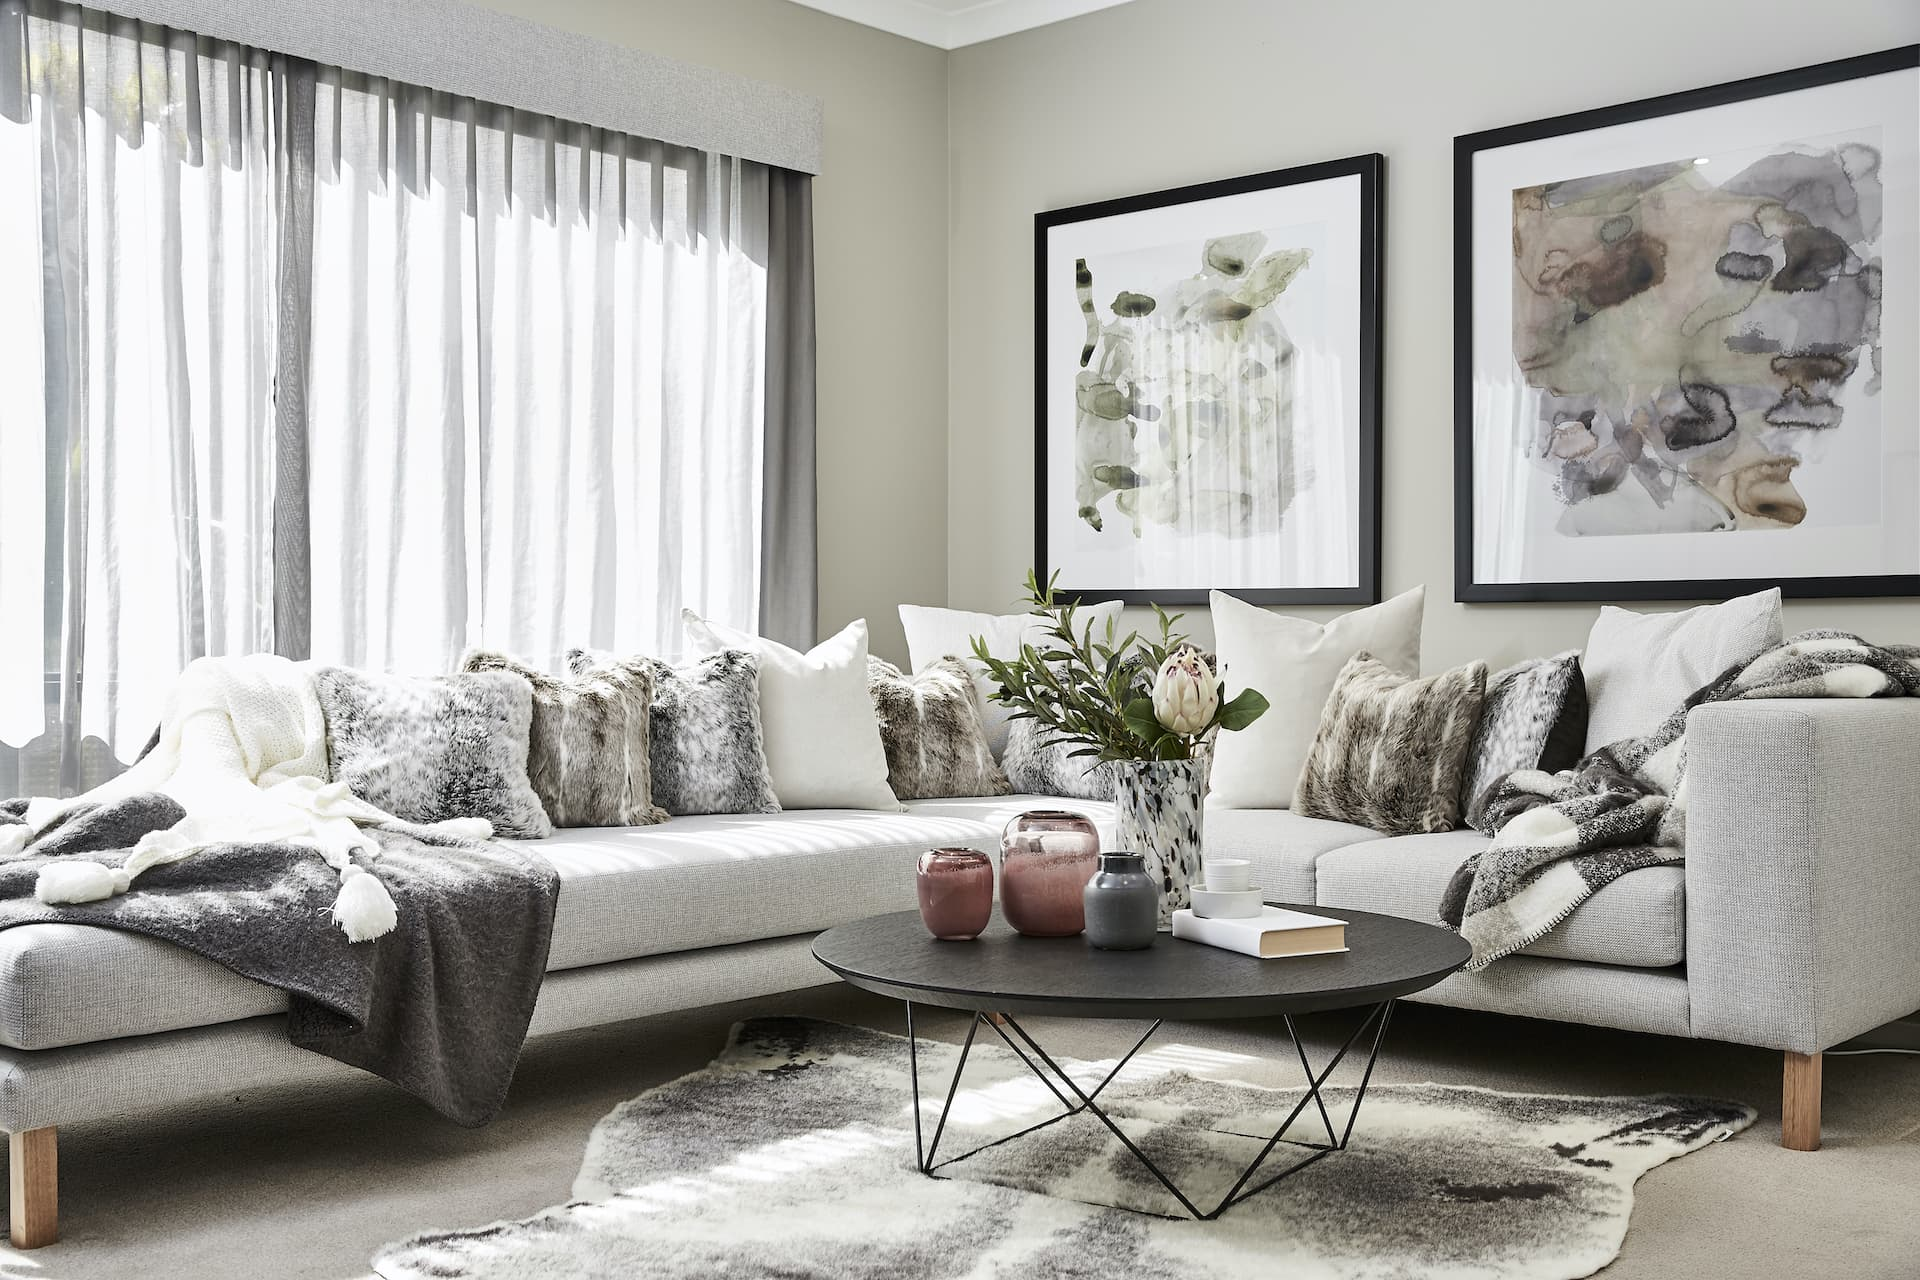 sofa styling with scatter cushion combinations faux fur throw pillows